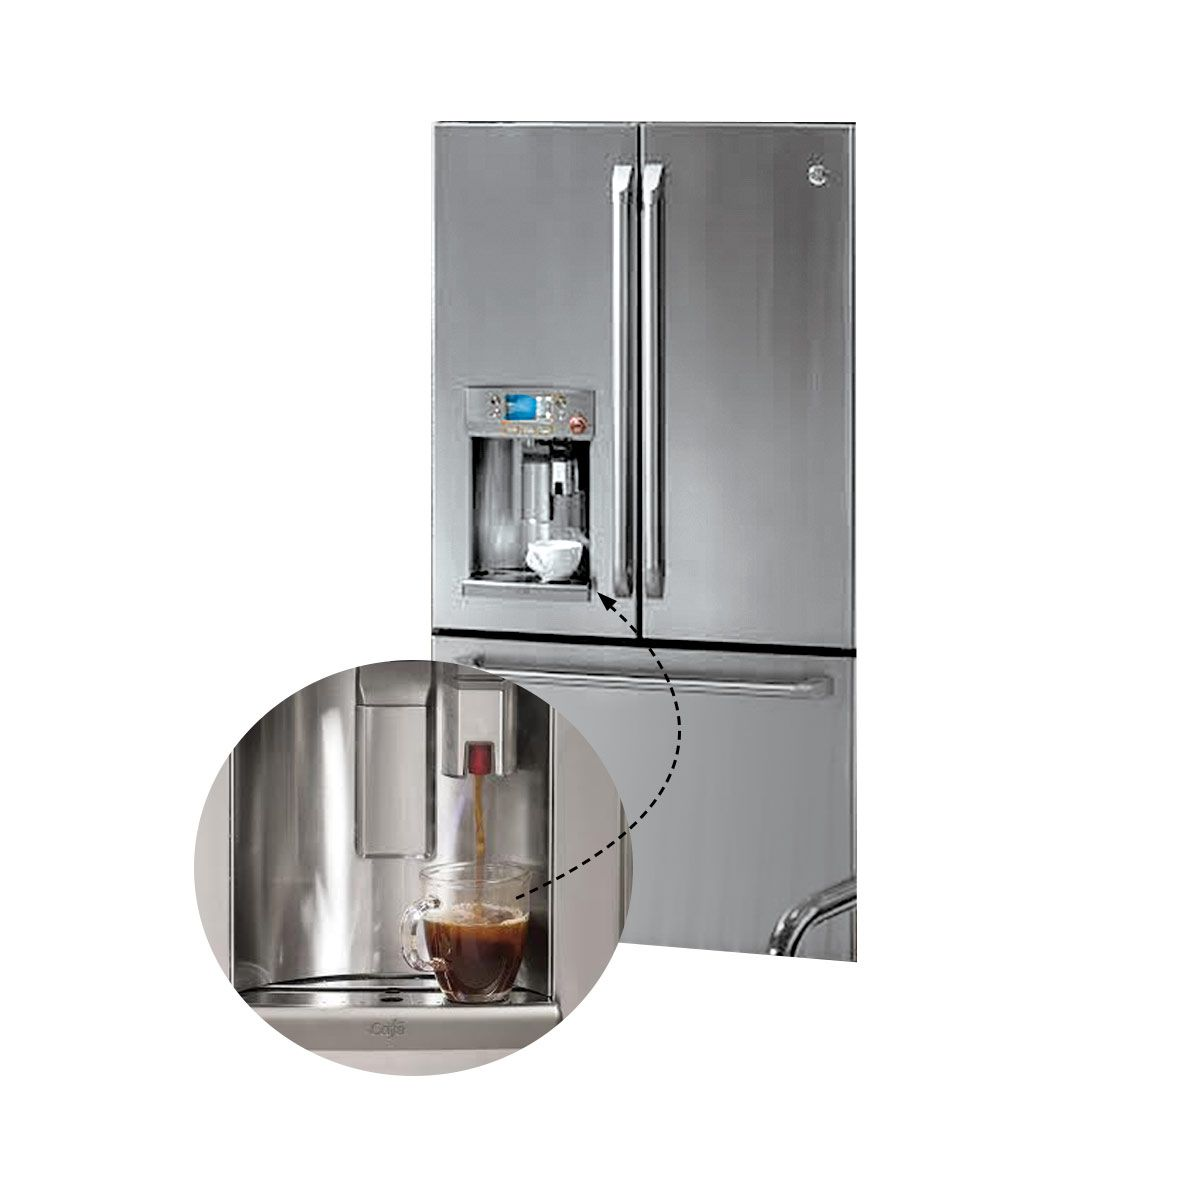 A Coffee Making Fridge Gift Guide 2015 Home Goods The Cut